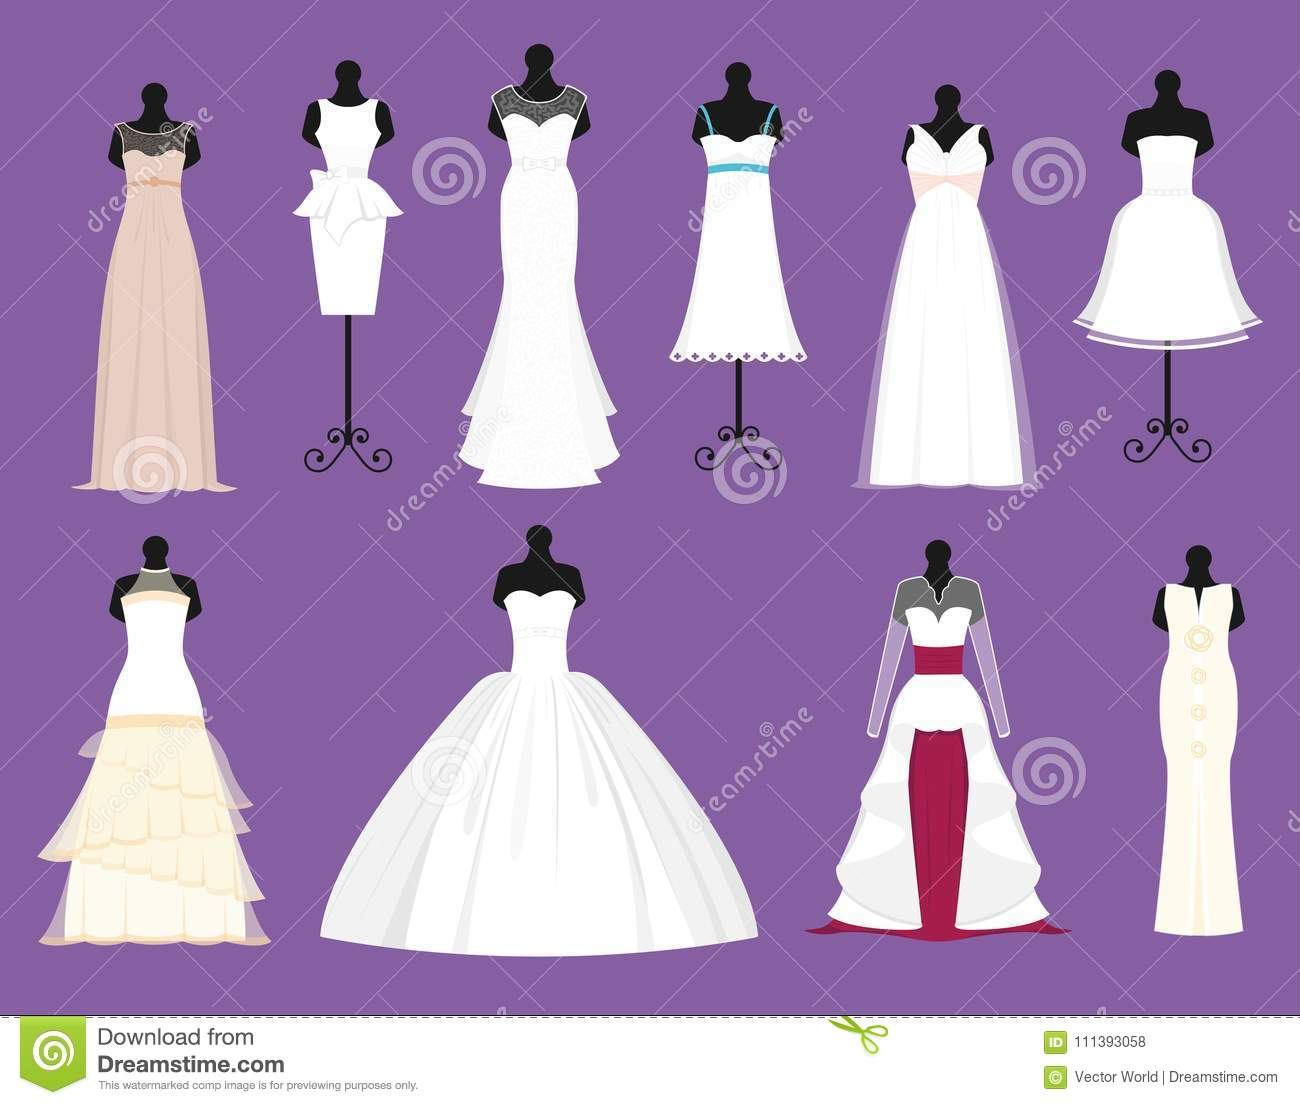 wedding bride white dresses vector set bride bridesmaid white wear dressing accessories bridal shower celebration and